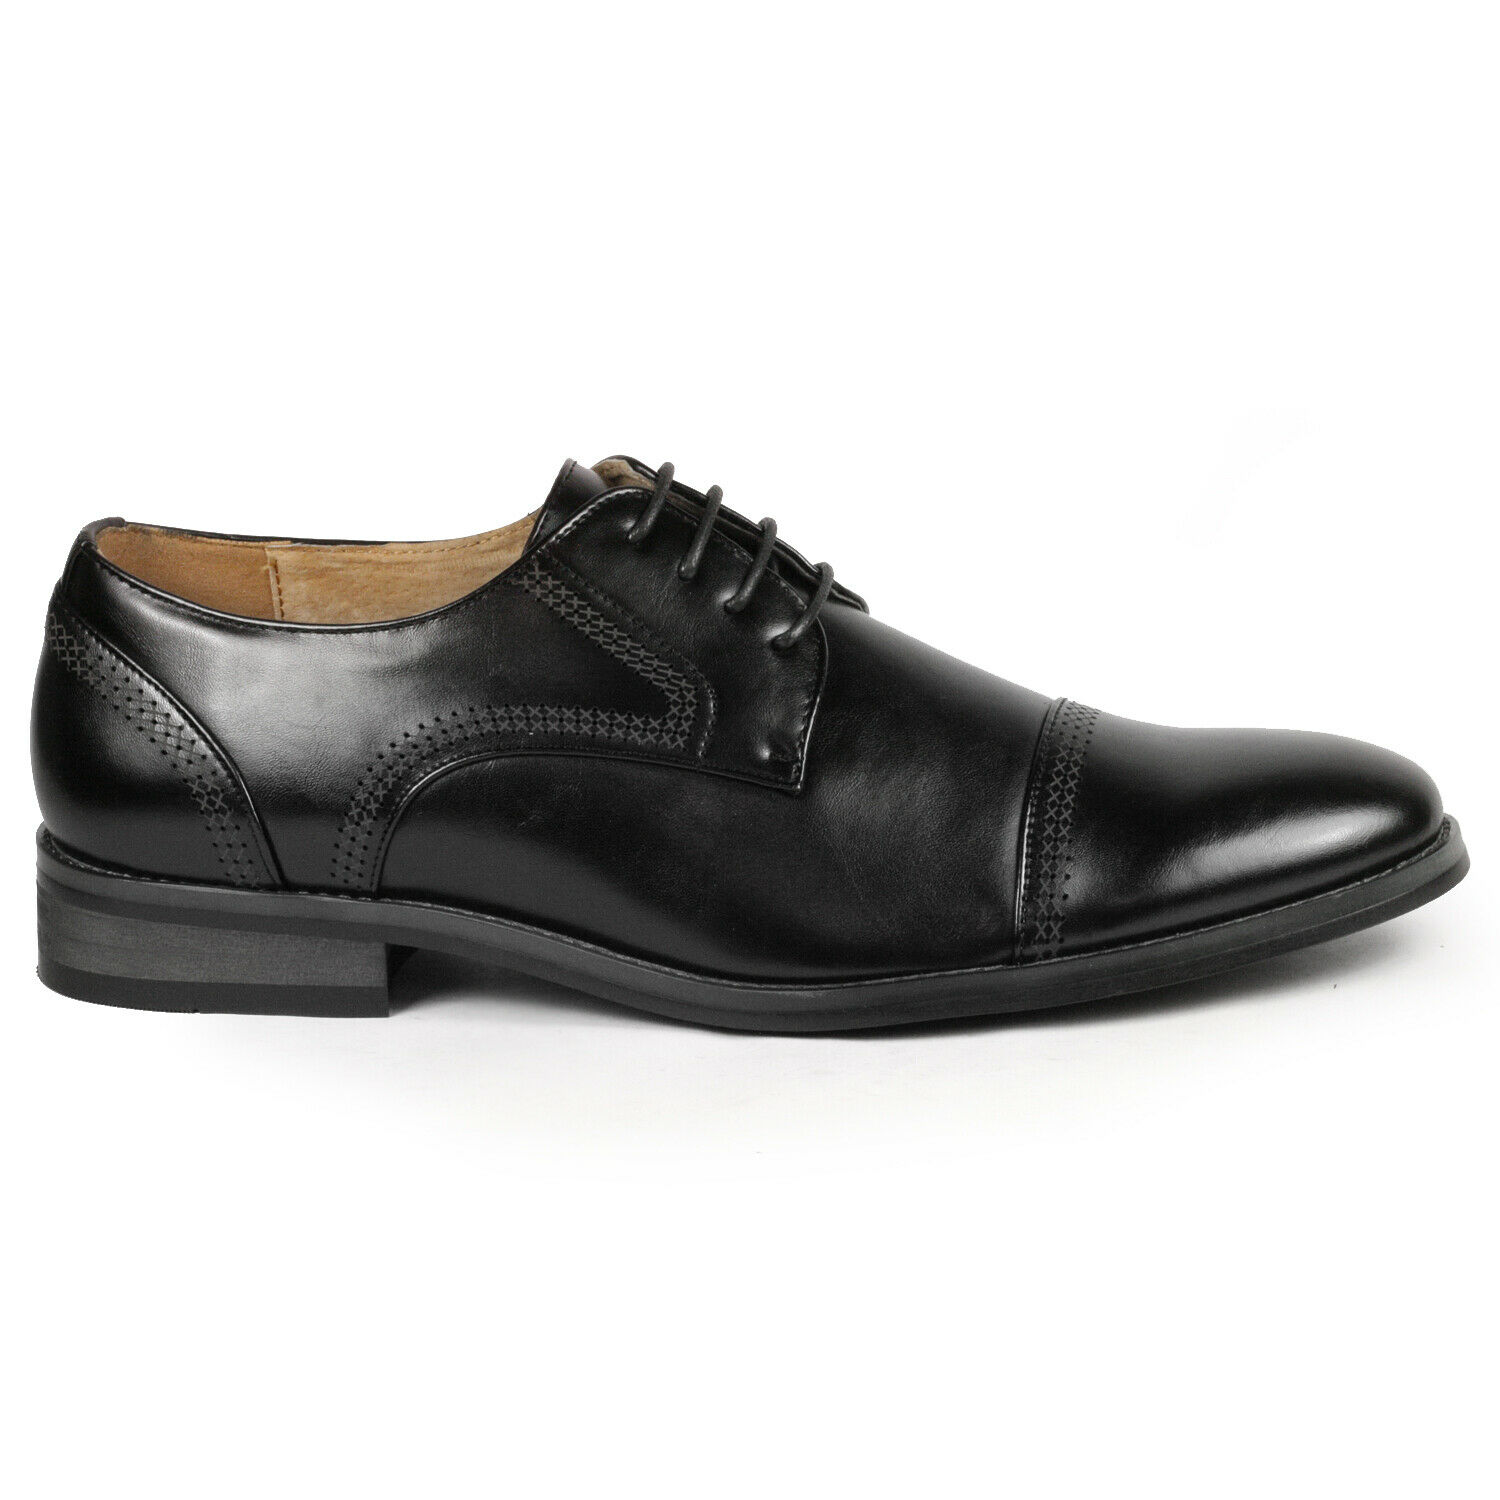 Black Men's Cap Toe Lace Up Oxford Classic Dress Shoe 1